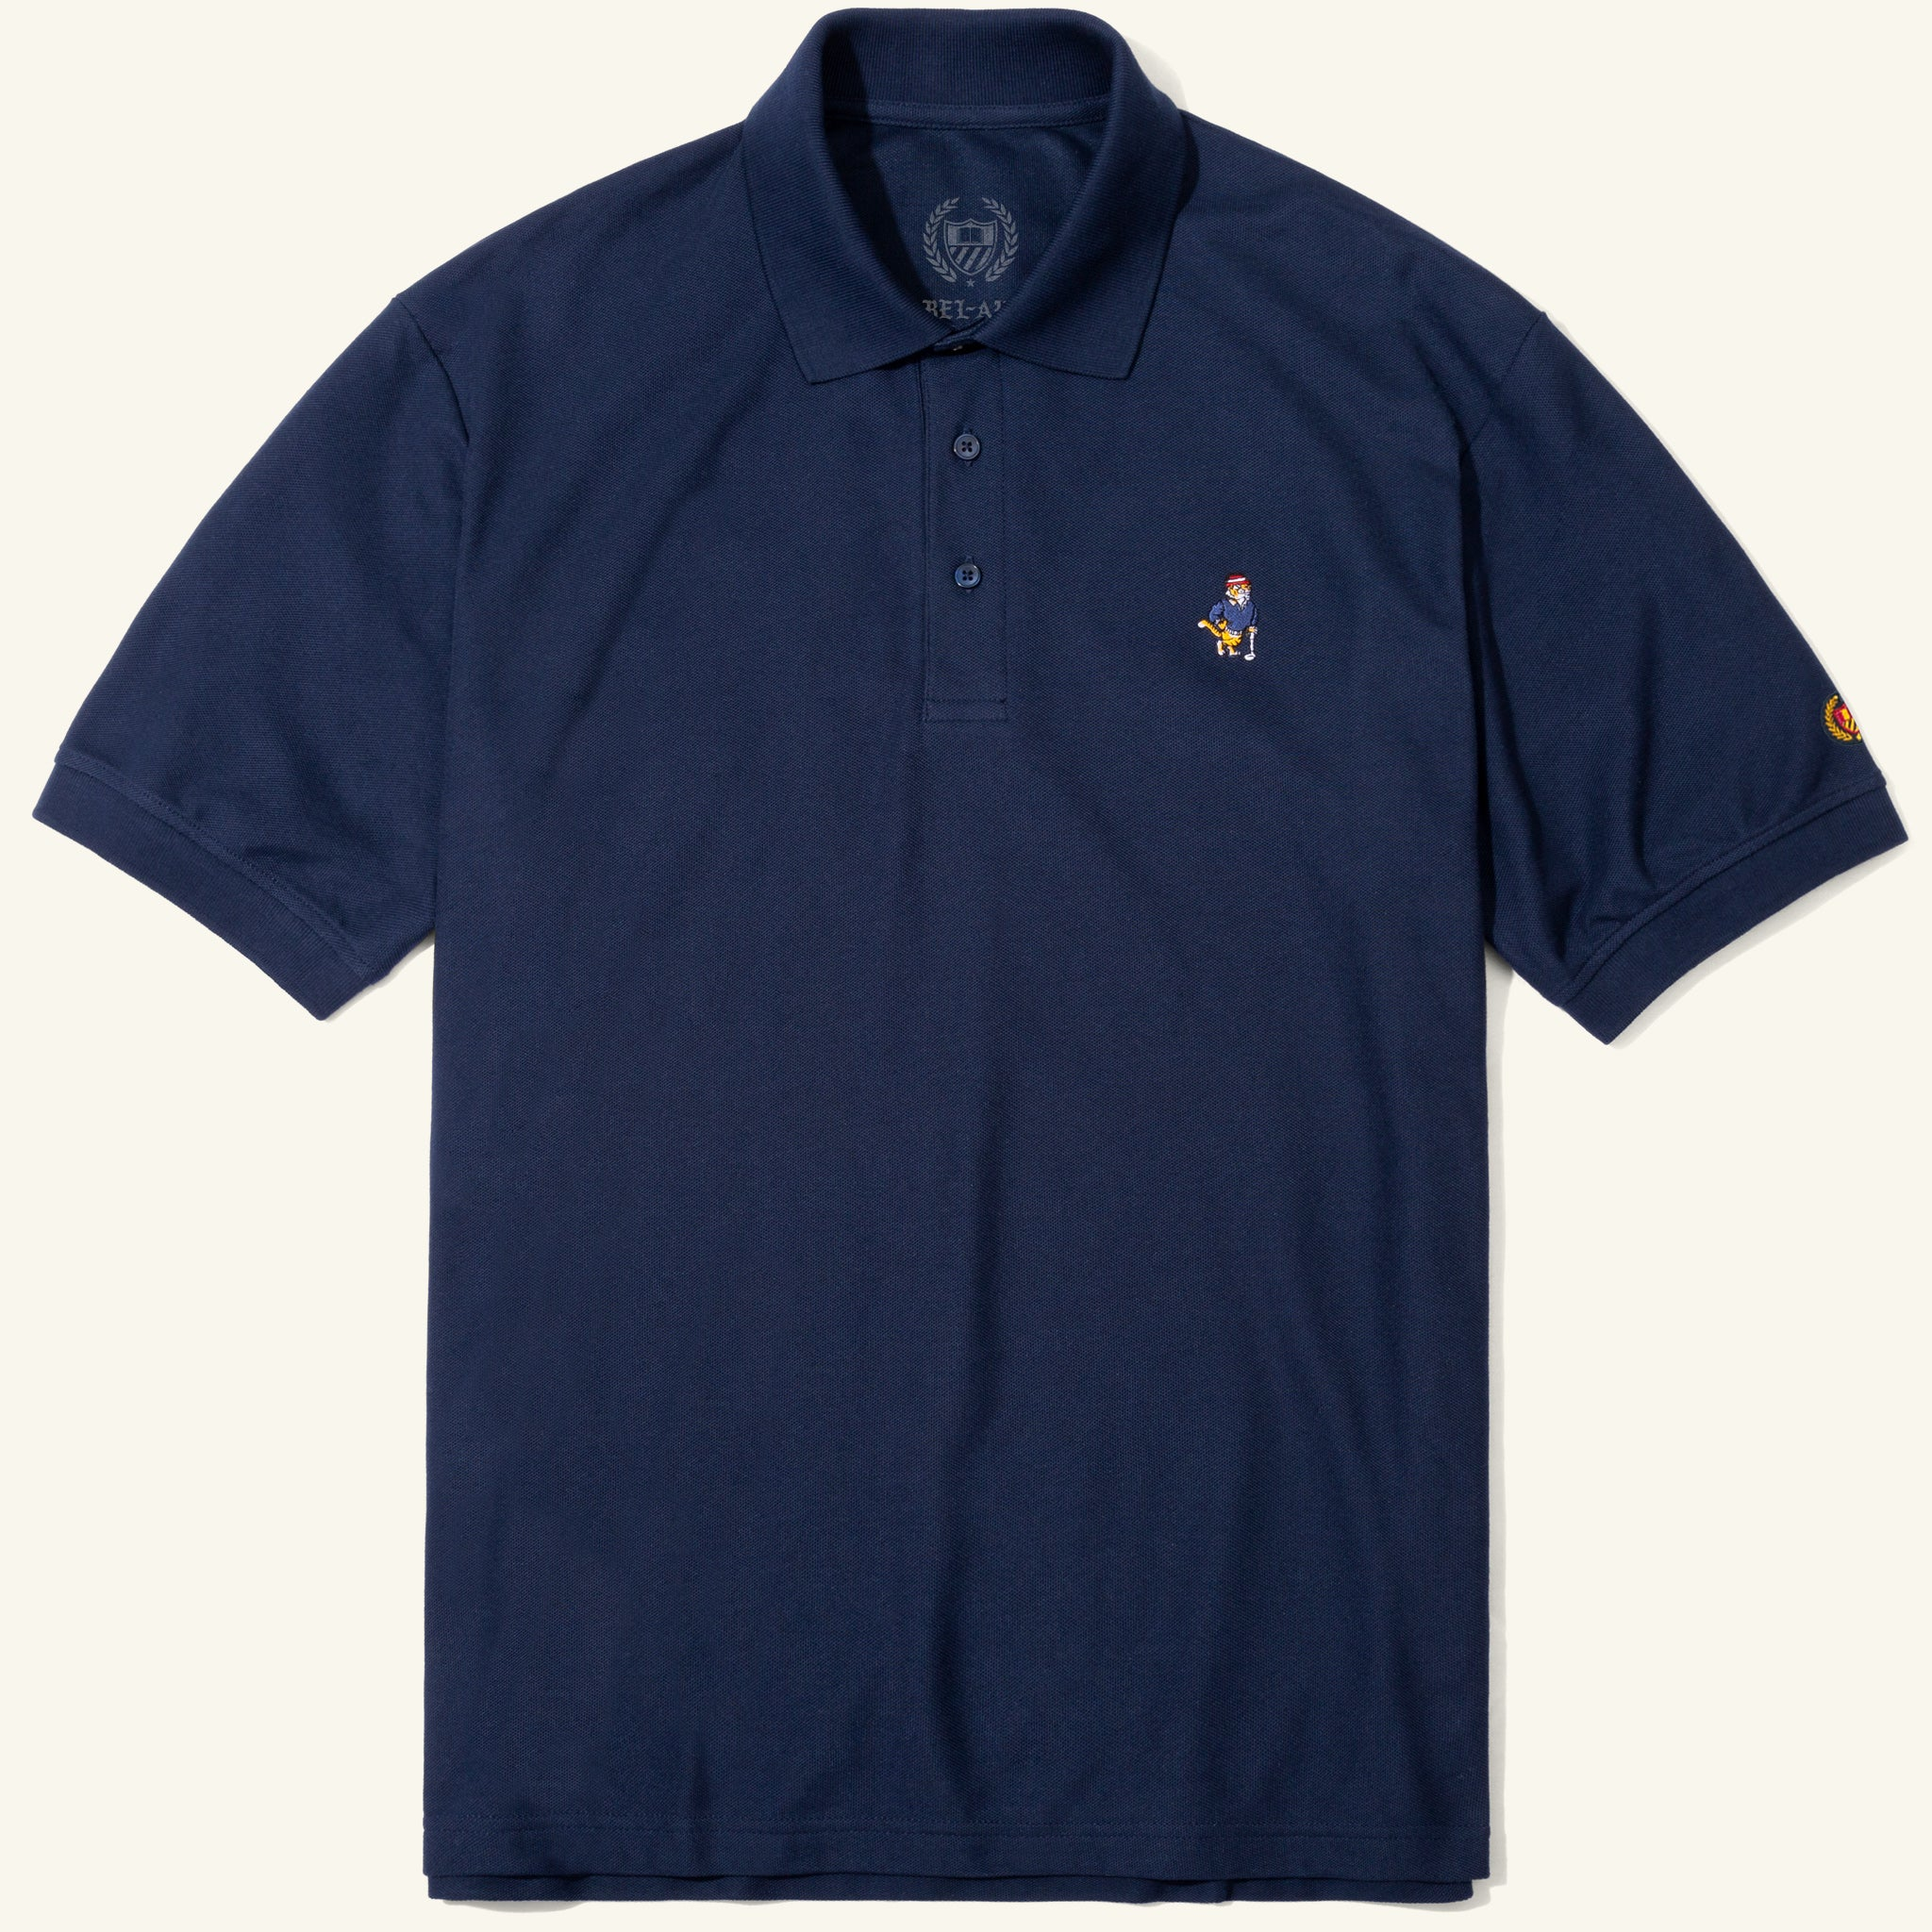 Bel Air Banks Tee Time Embroidered Polo Navy Image  #1